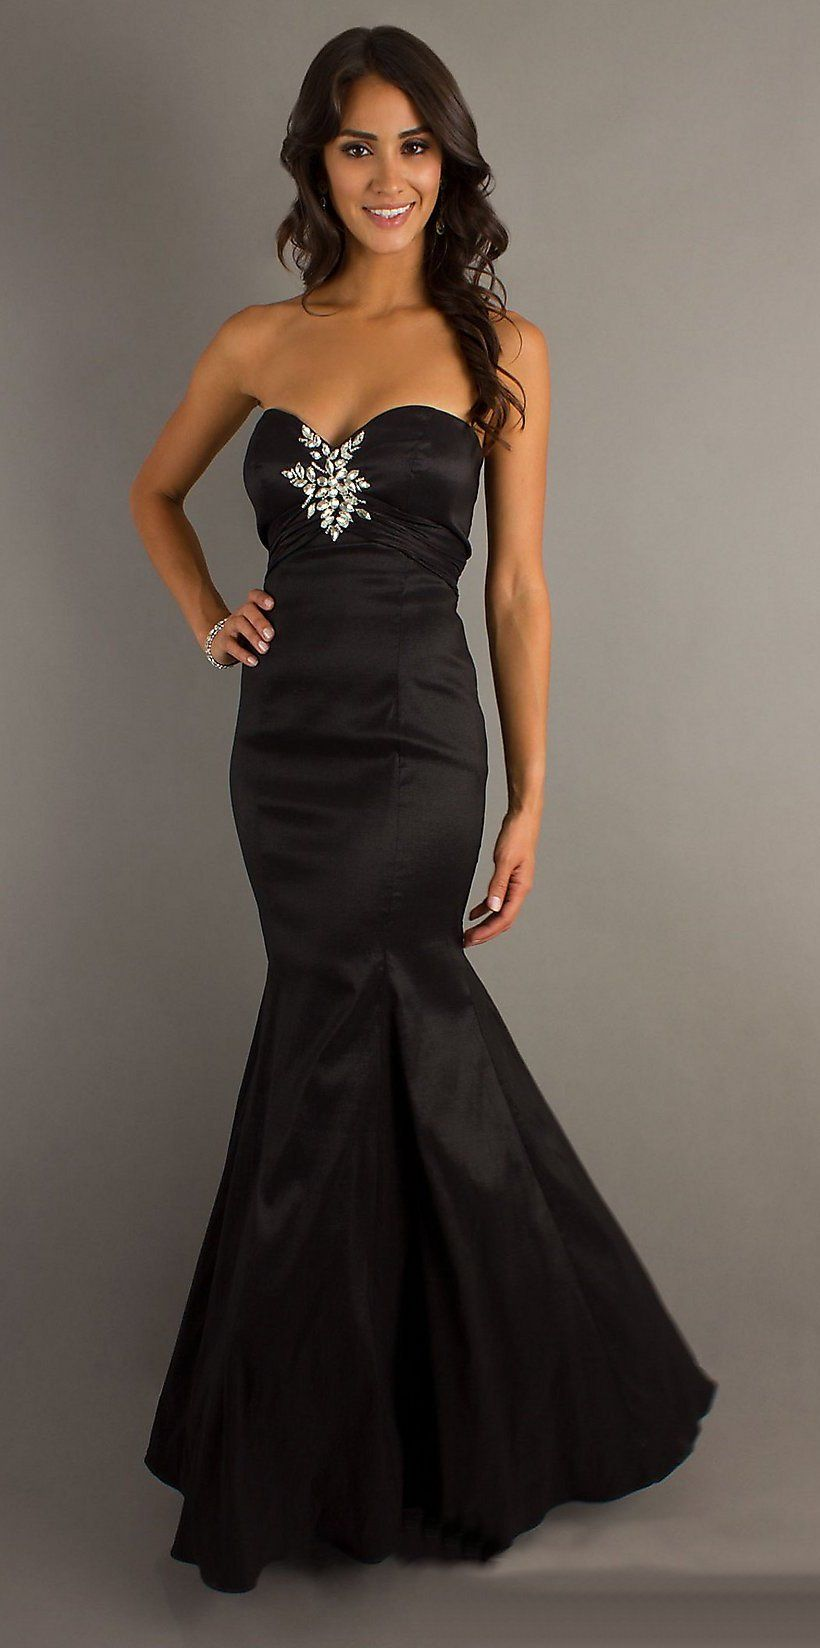 Black Mermaid Prom Dress Long Strapless Classic Hollywood Style (5 ...